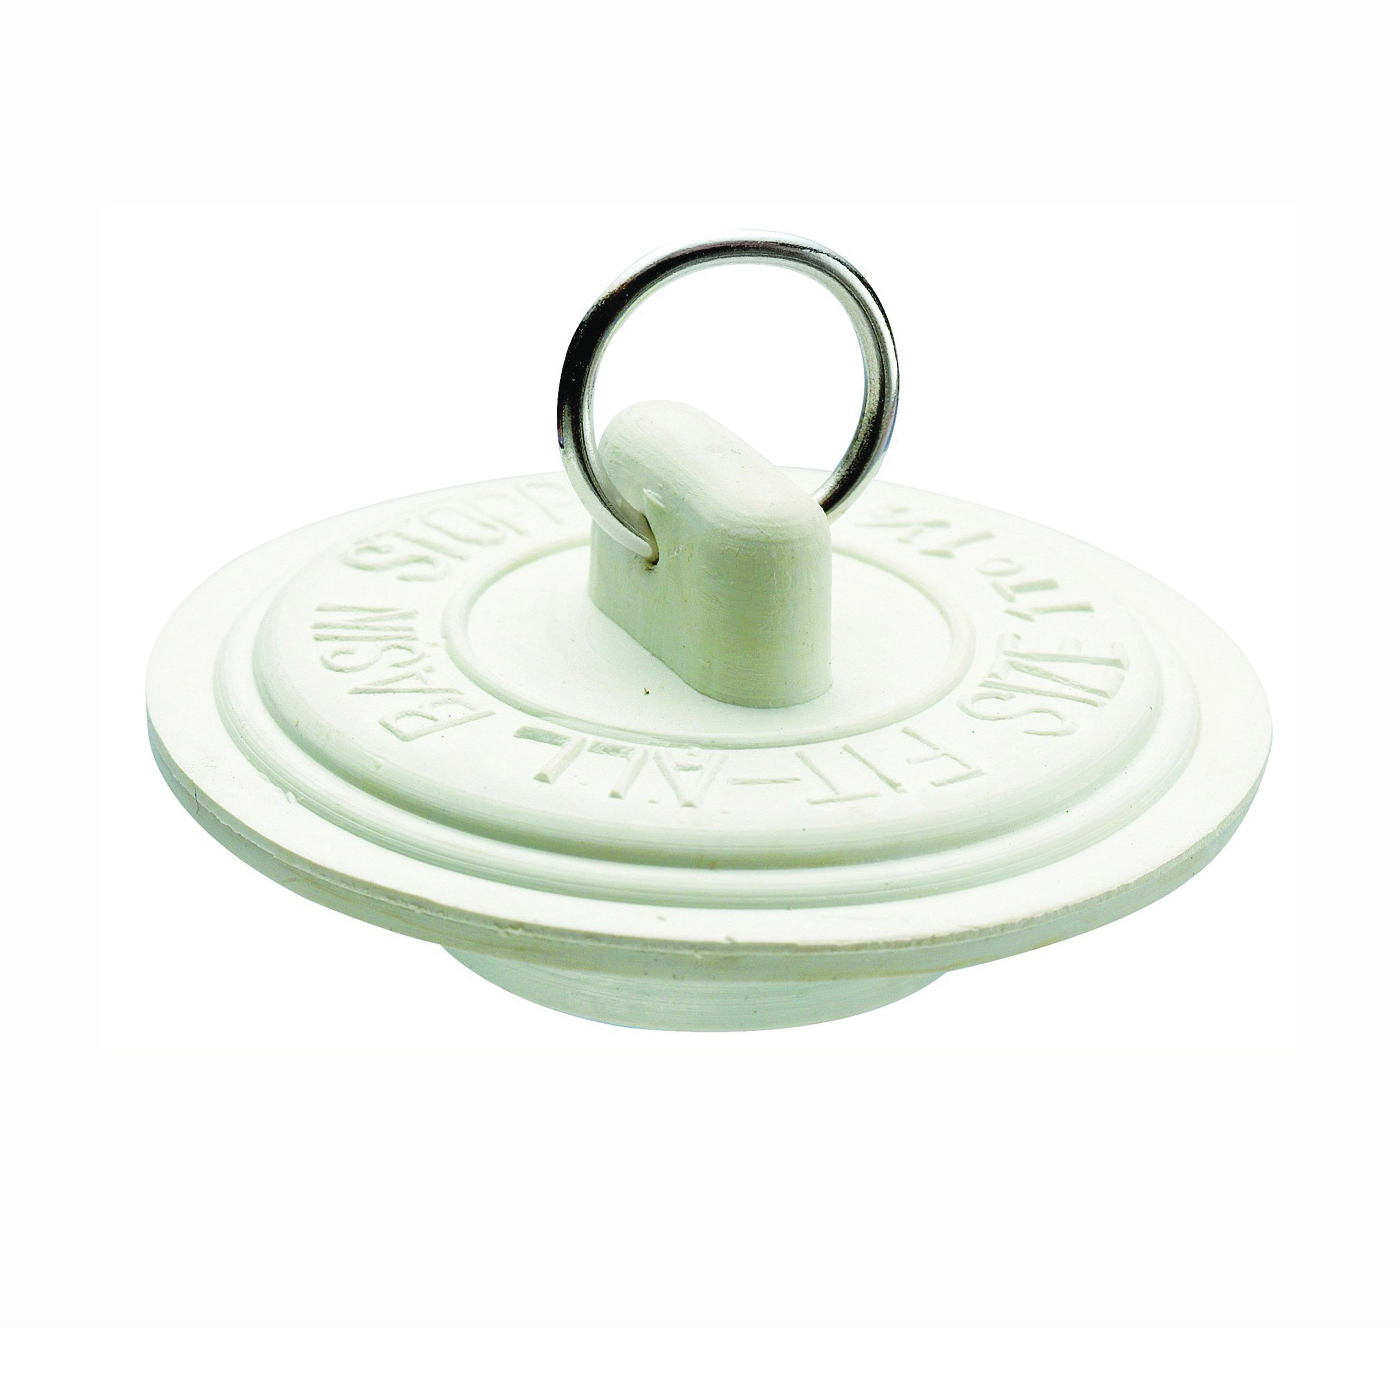 Picture of Plumb Pak Duo Fit PP820-6 Drain Stopper, Rubber, White, For: 1-5/8 to 1-3/4 in Sink